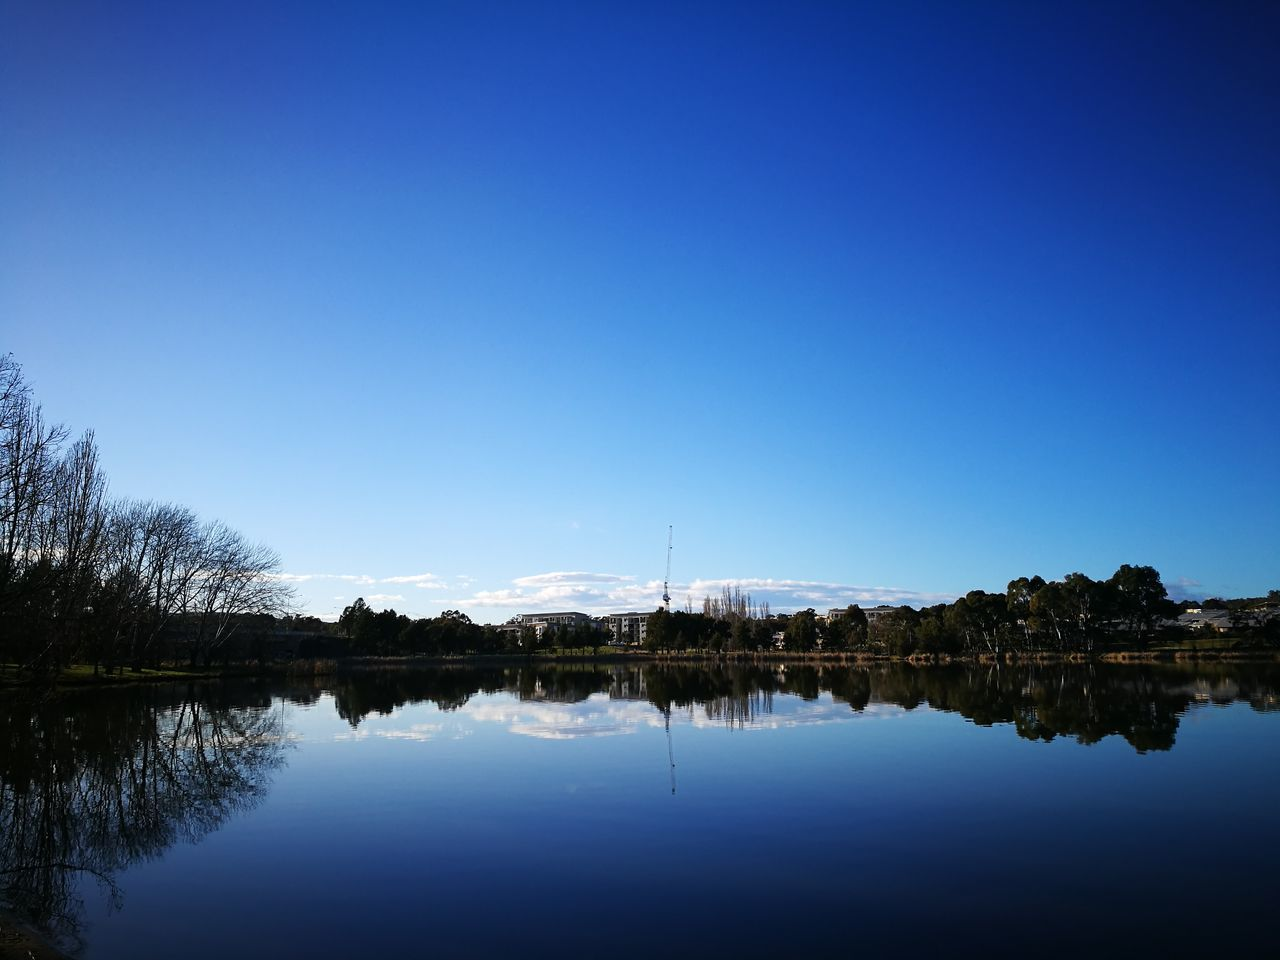 reflection, water, lake, tranquil scene, blue, waterfront, nature, beauty in nature, tranquility, clear sky, copy space, standing water, no people, outdoors, scenics, sky, day, tree